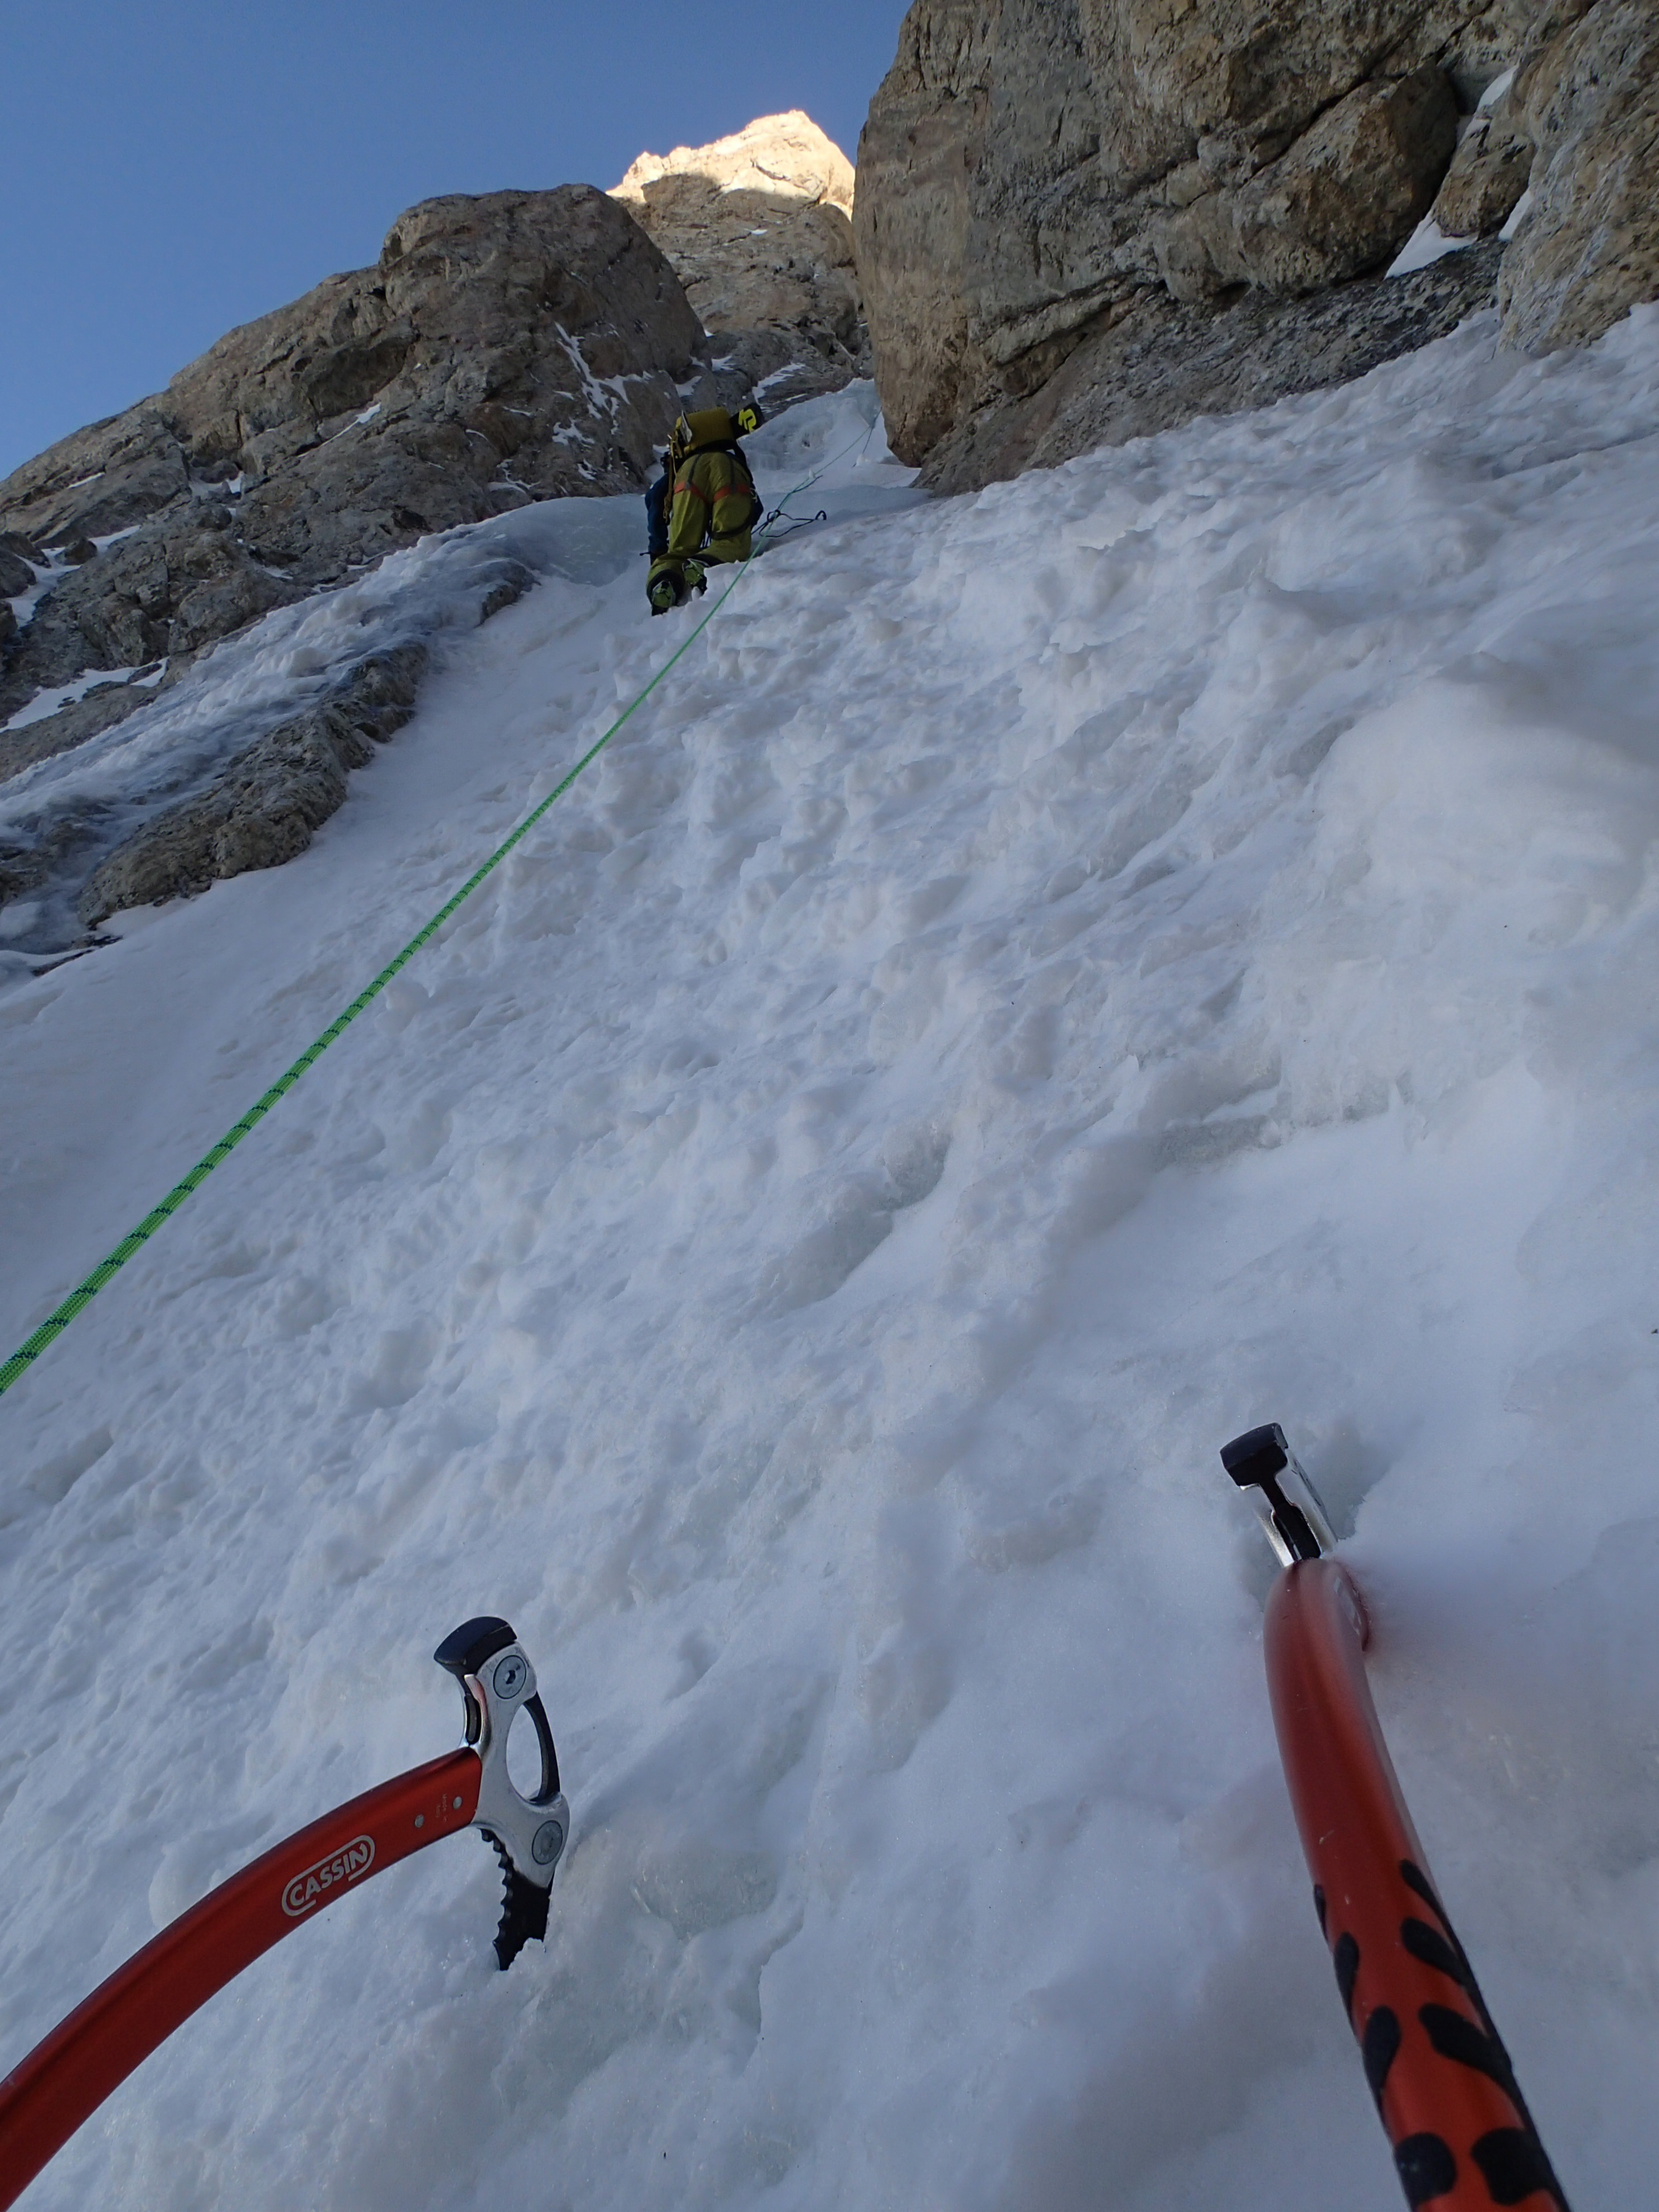 Ice climbing with ice axes up the Grand Teton in winter